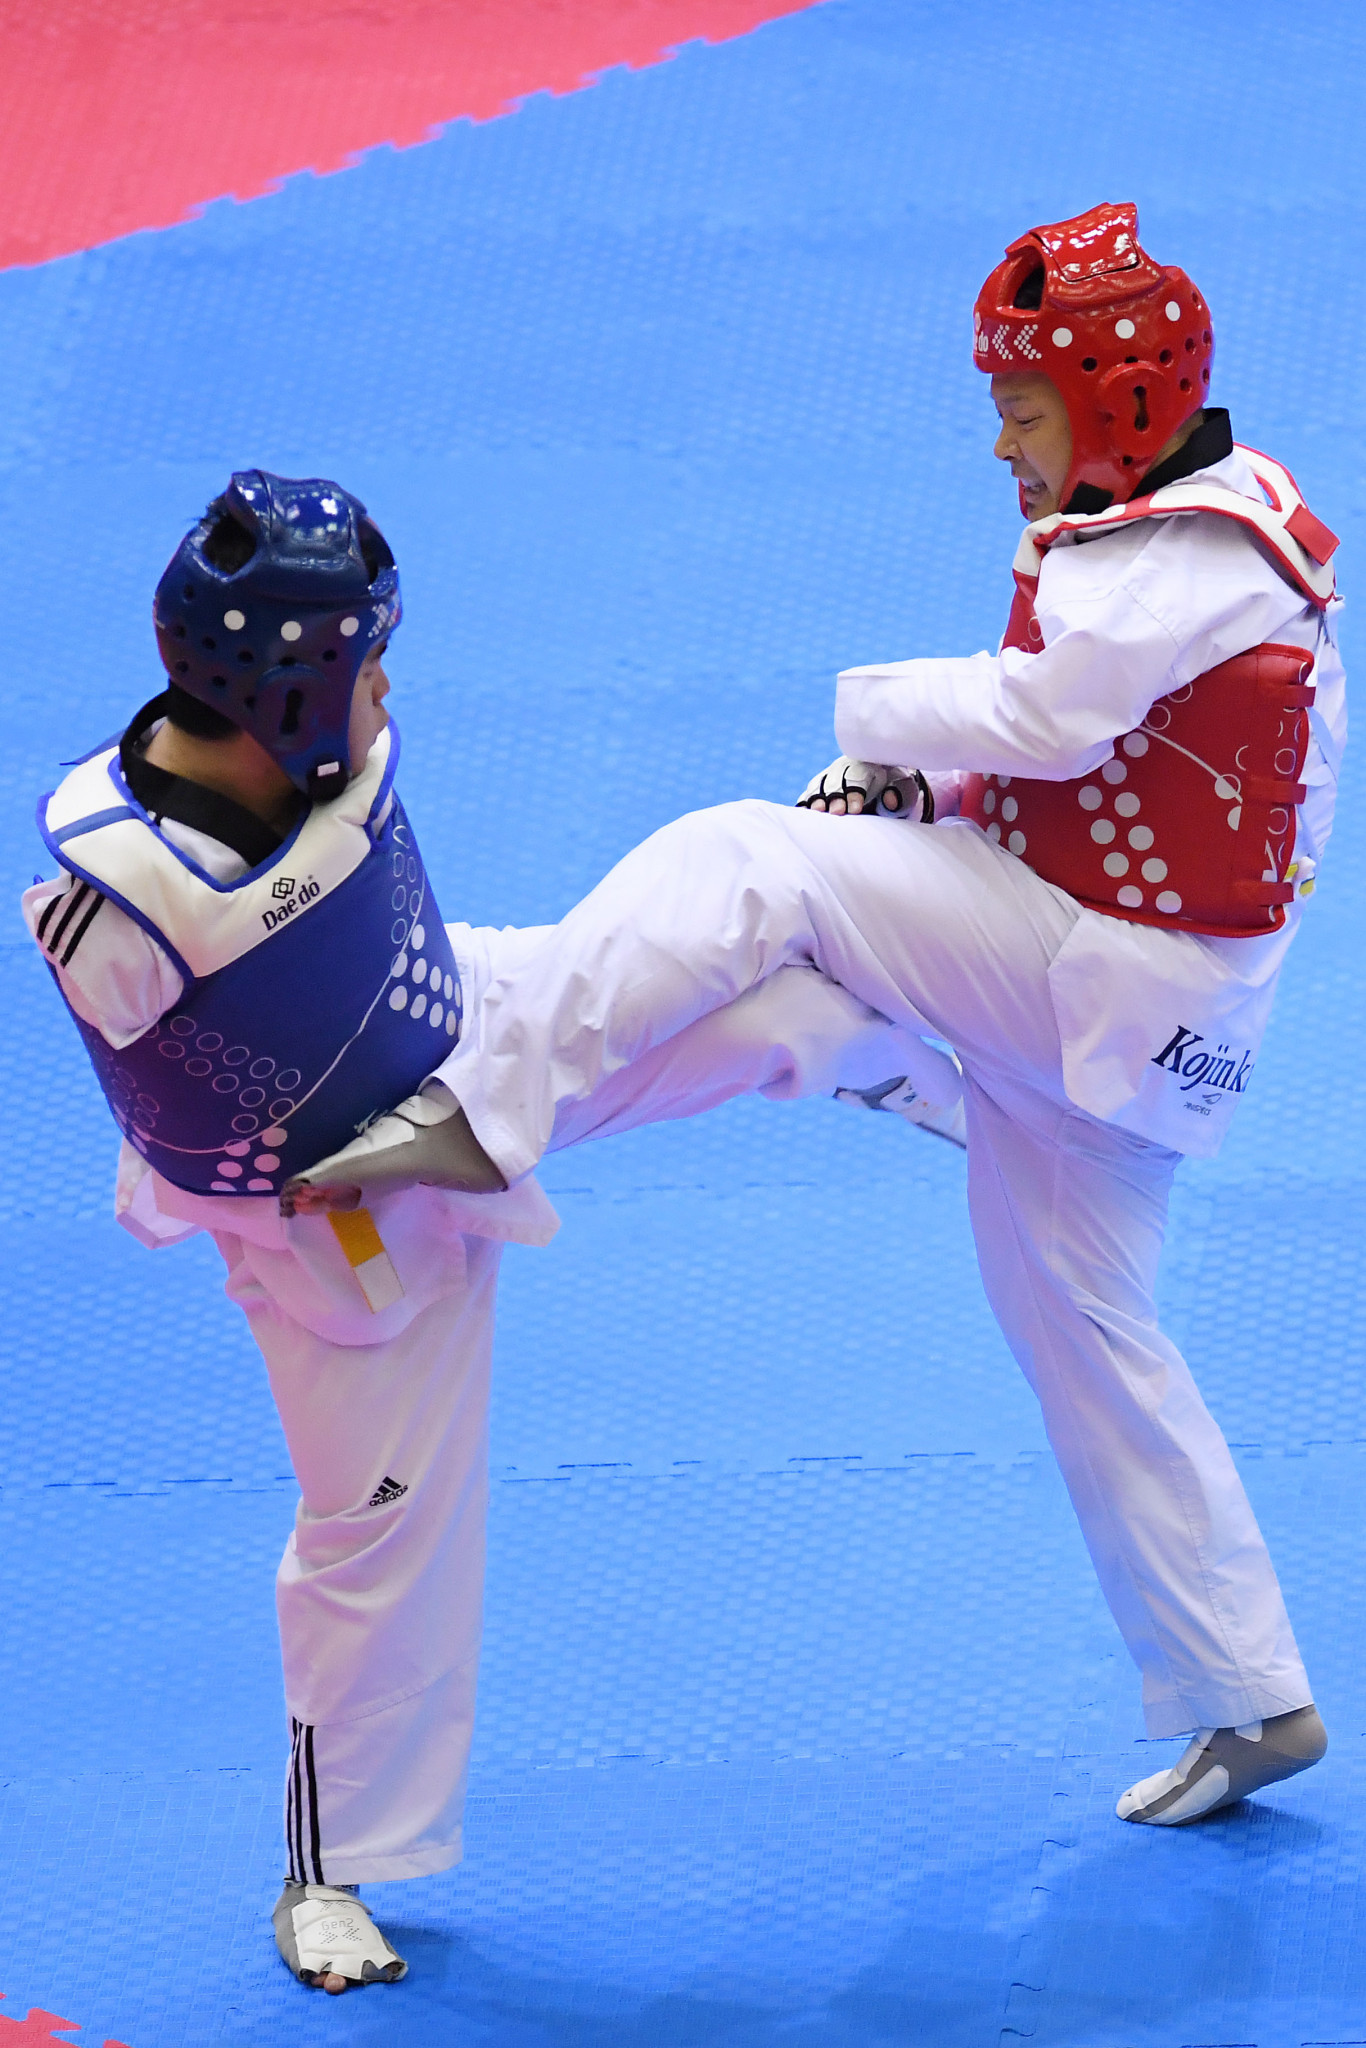 Taekwondo is due to make its Paralympic debut at the re-arranged Tokyo 2020 next year ©Getty Images